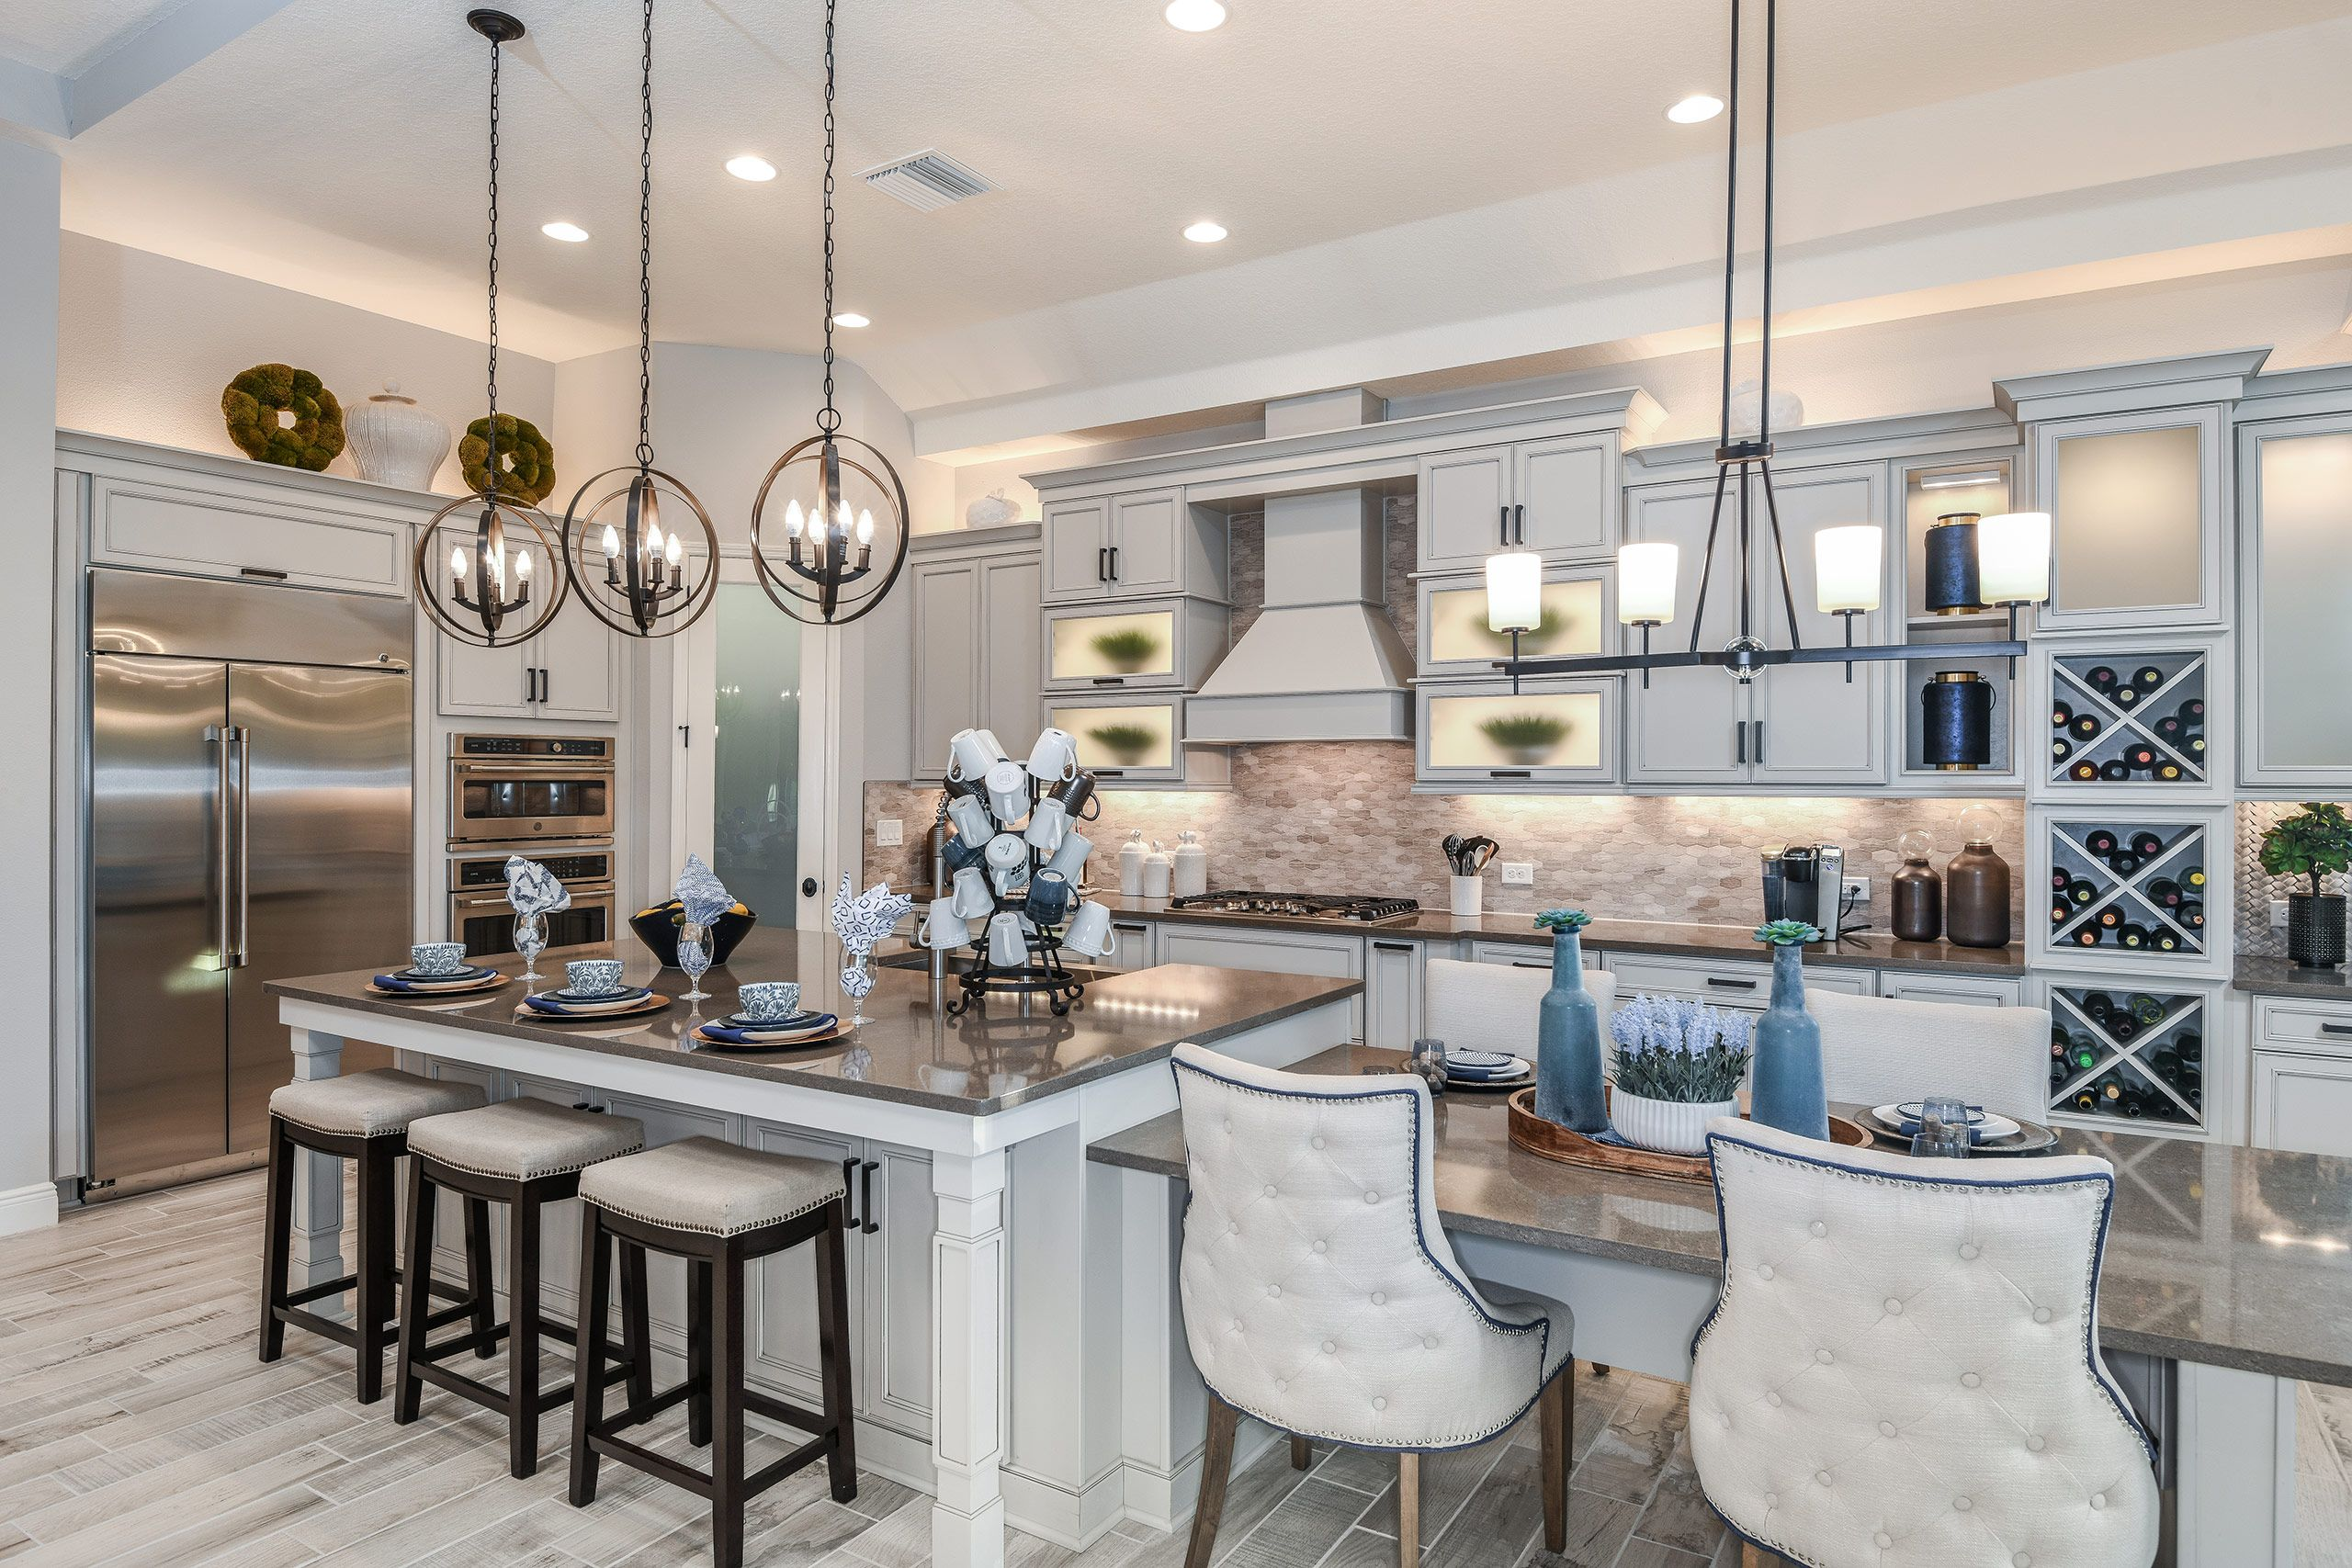 'Hawks Fern' by Homes by WestBay in Tampa-St. Petersburg